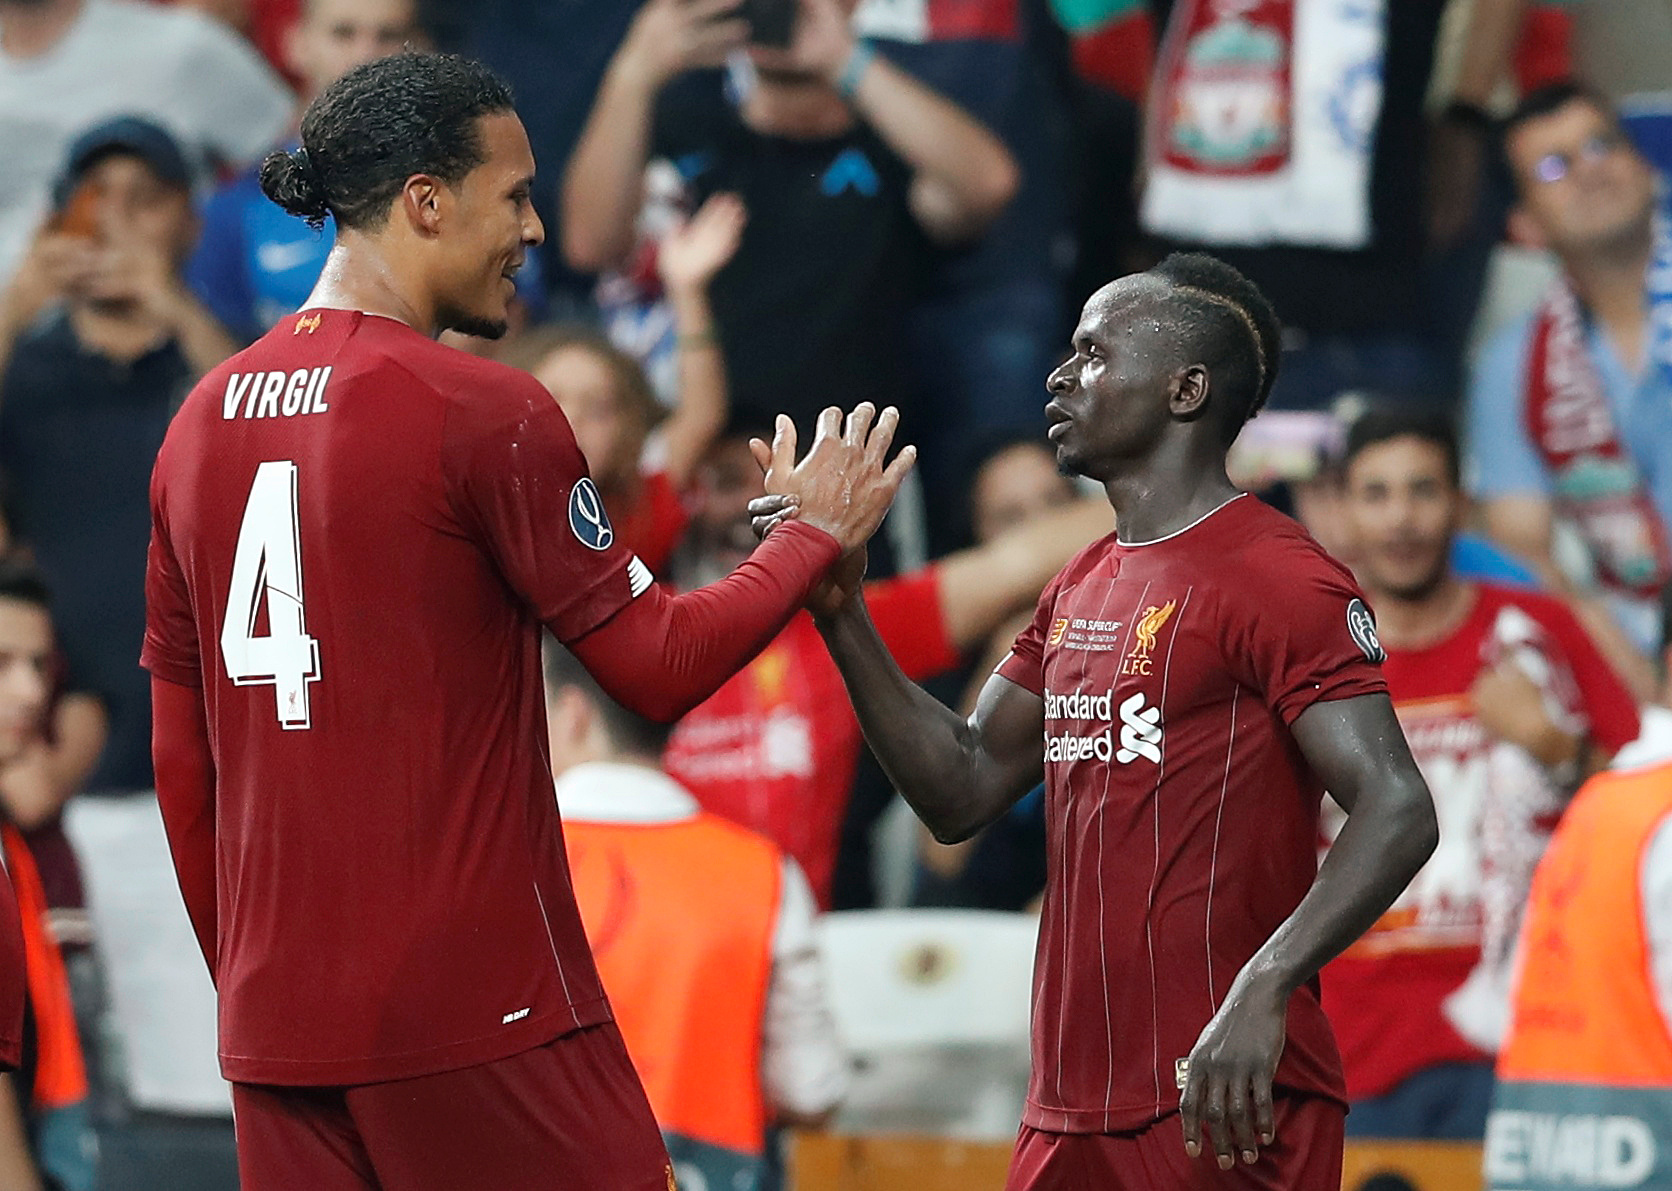 VVD hails Liverpool for important Super Cup win